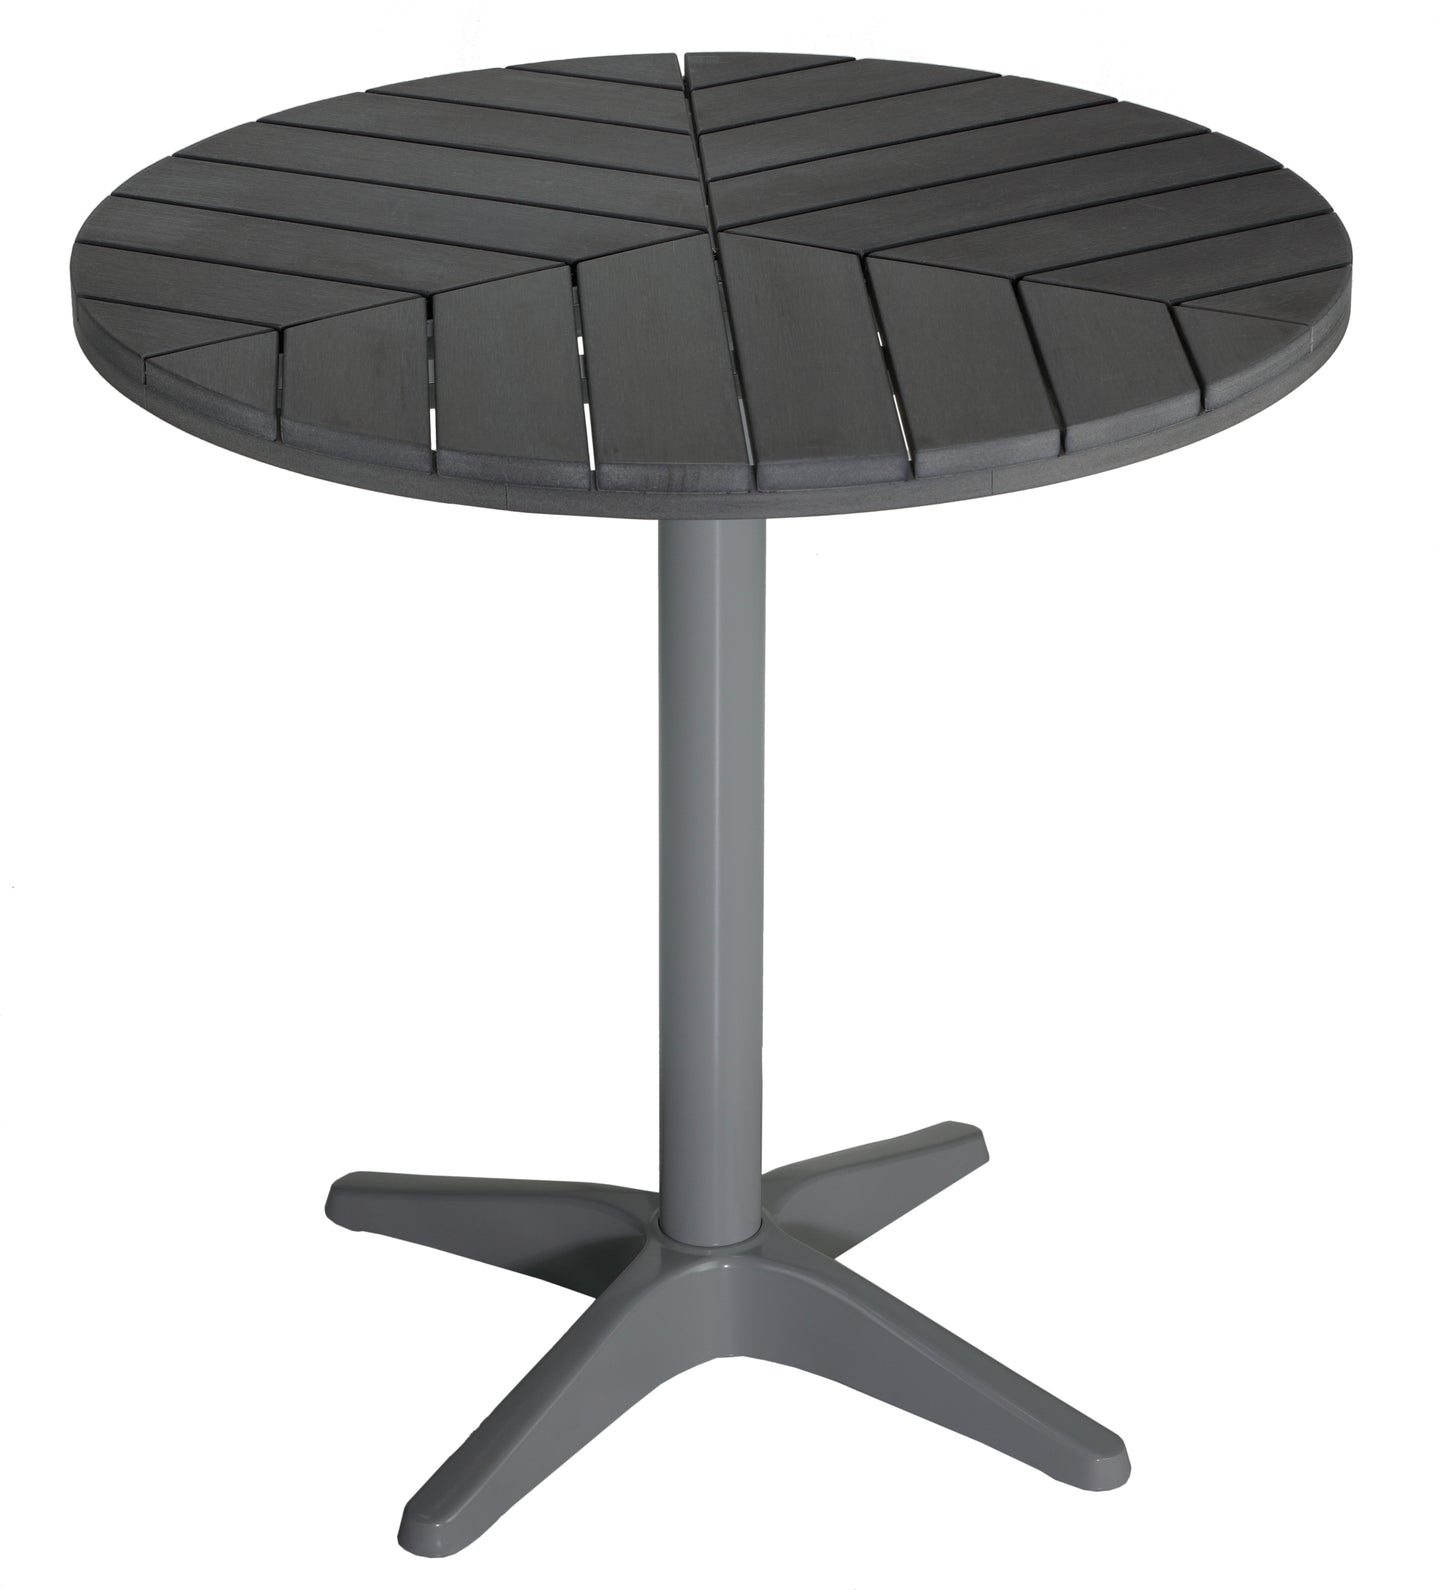 Jaxon Round Aluminum Outdoor Bistro Table in Poly Resin, Silver / Slate Grey 28